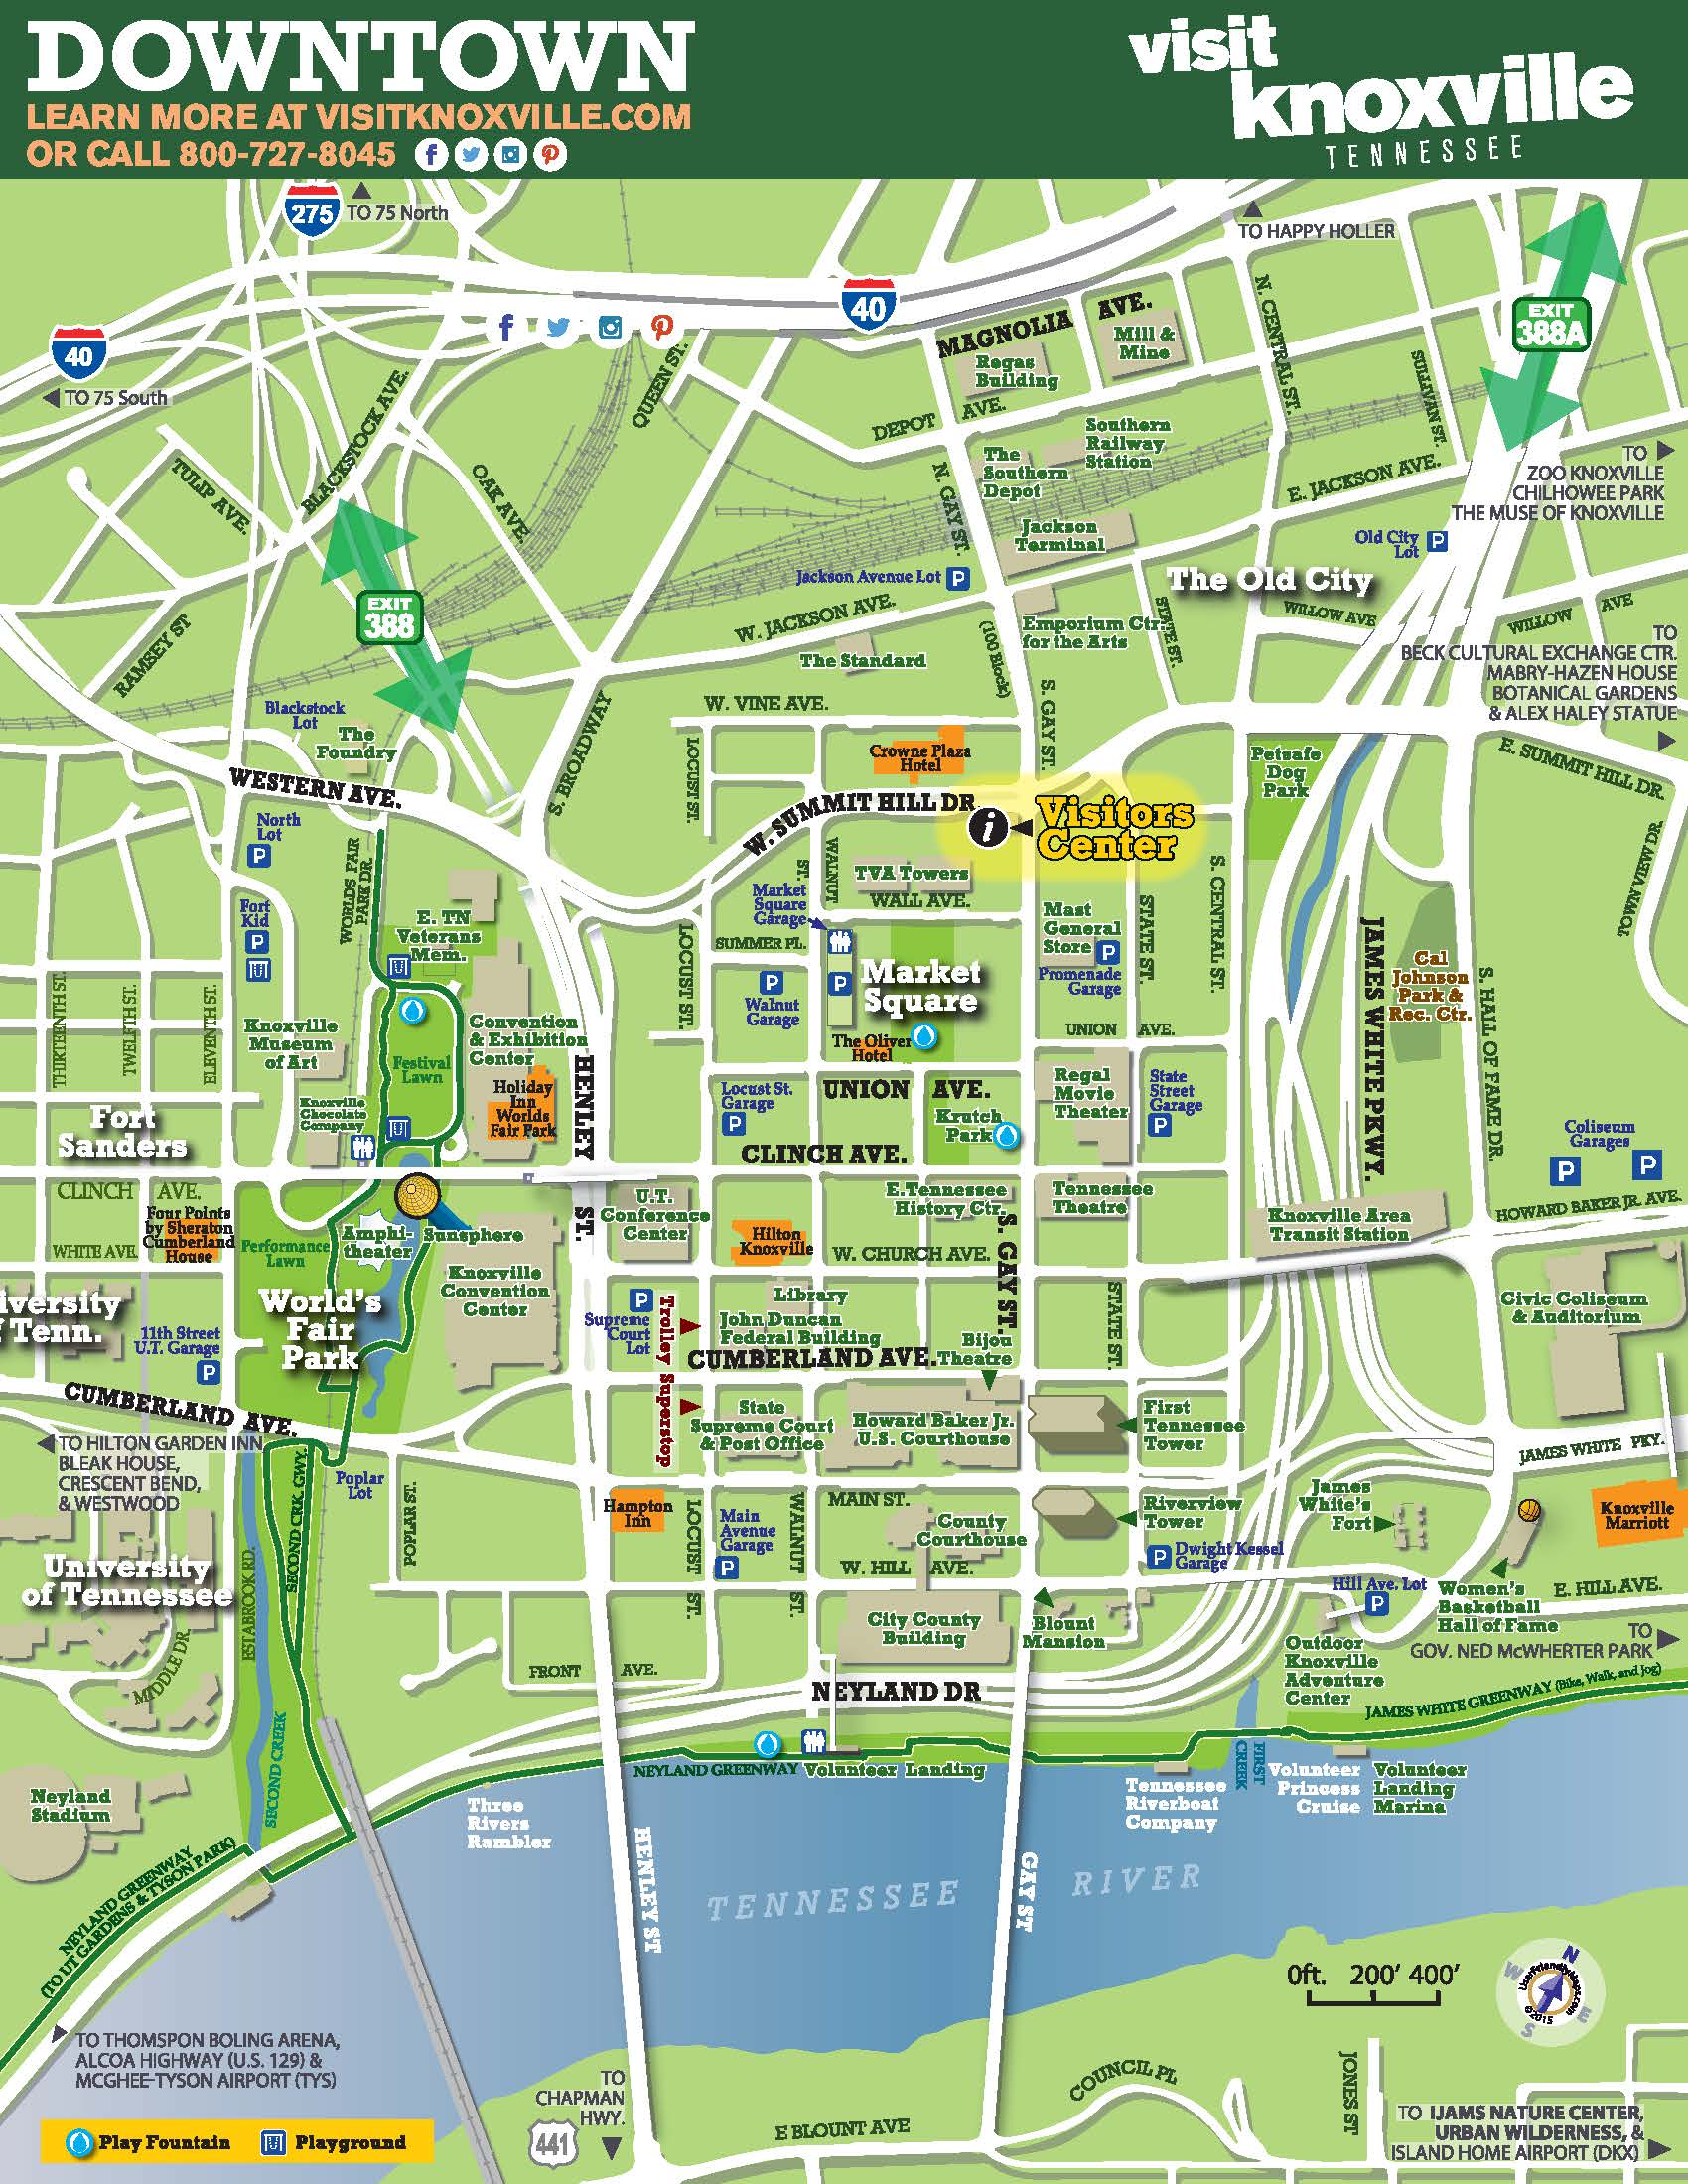 Map Of Downtown Maps | Visit Knoxville Map Of Downtown